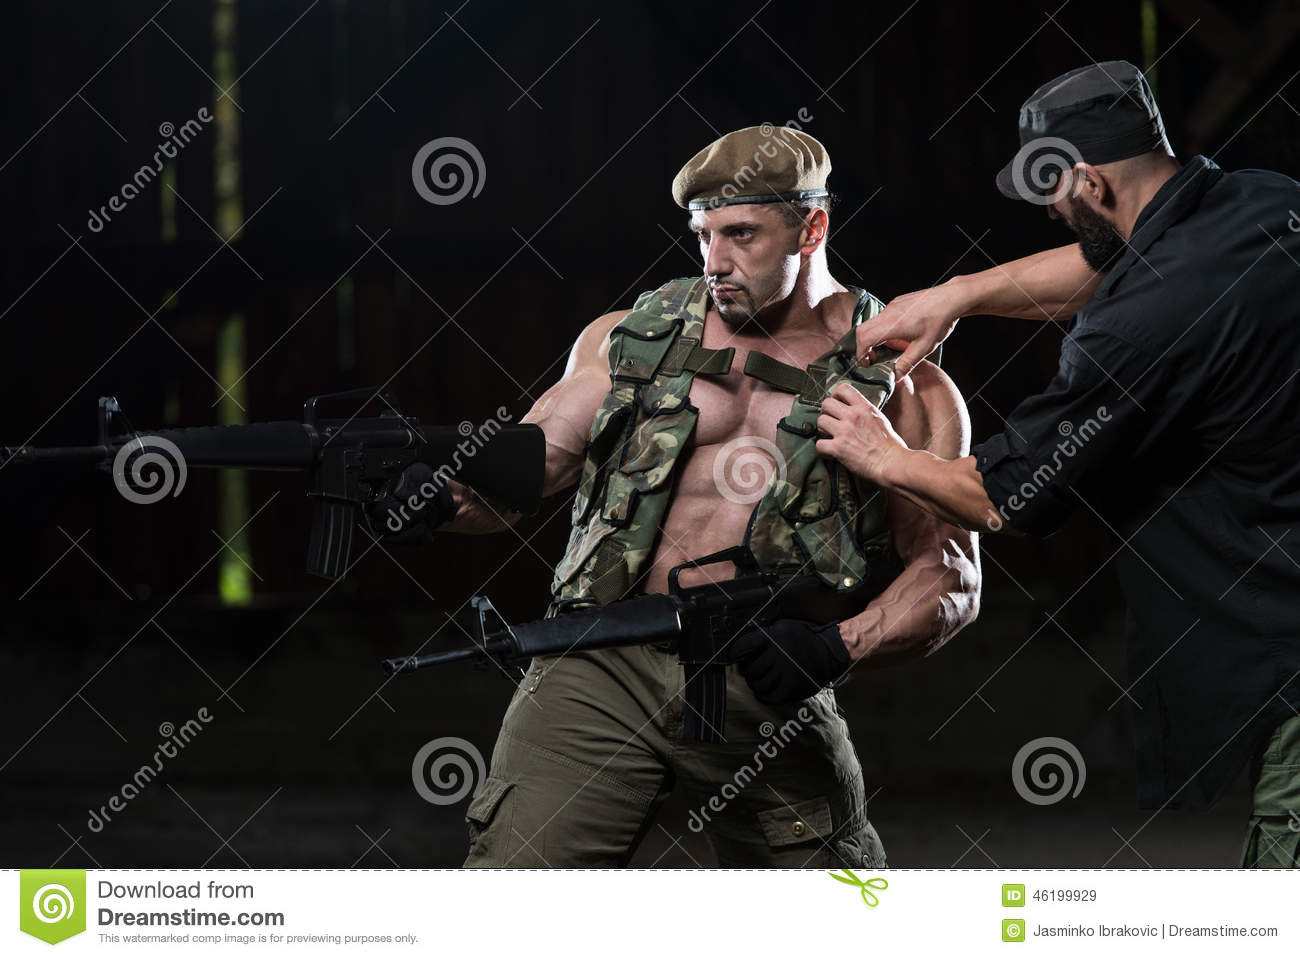 Man Tuning Armor On Soldier Befor Photoshoot Stock Image Image Of Bodybuilding Action 46199929